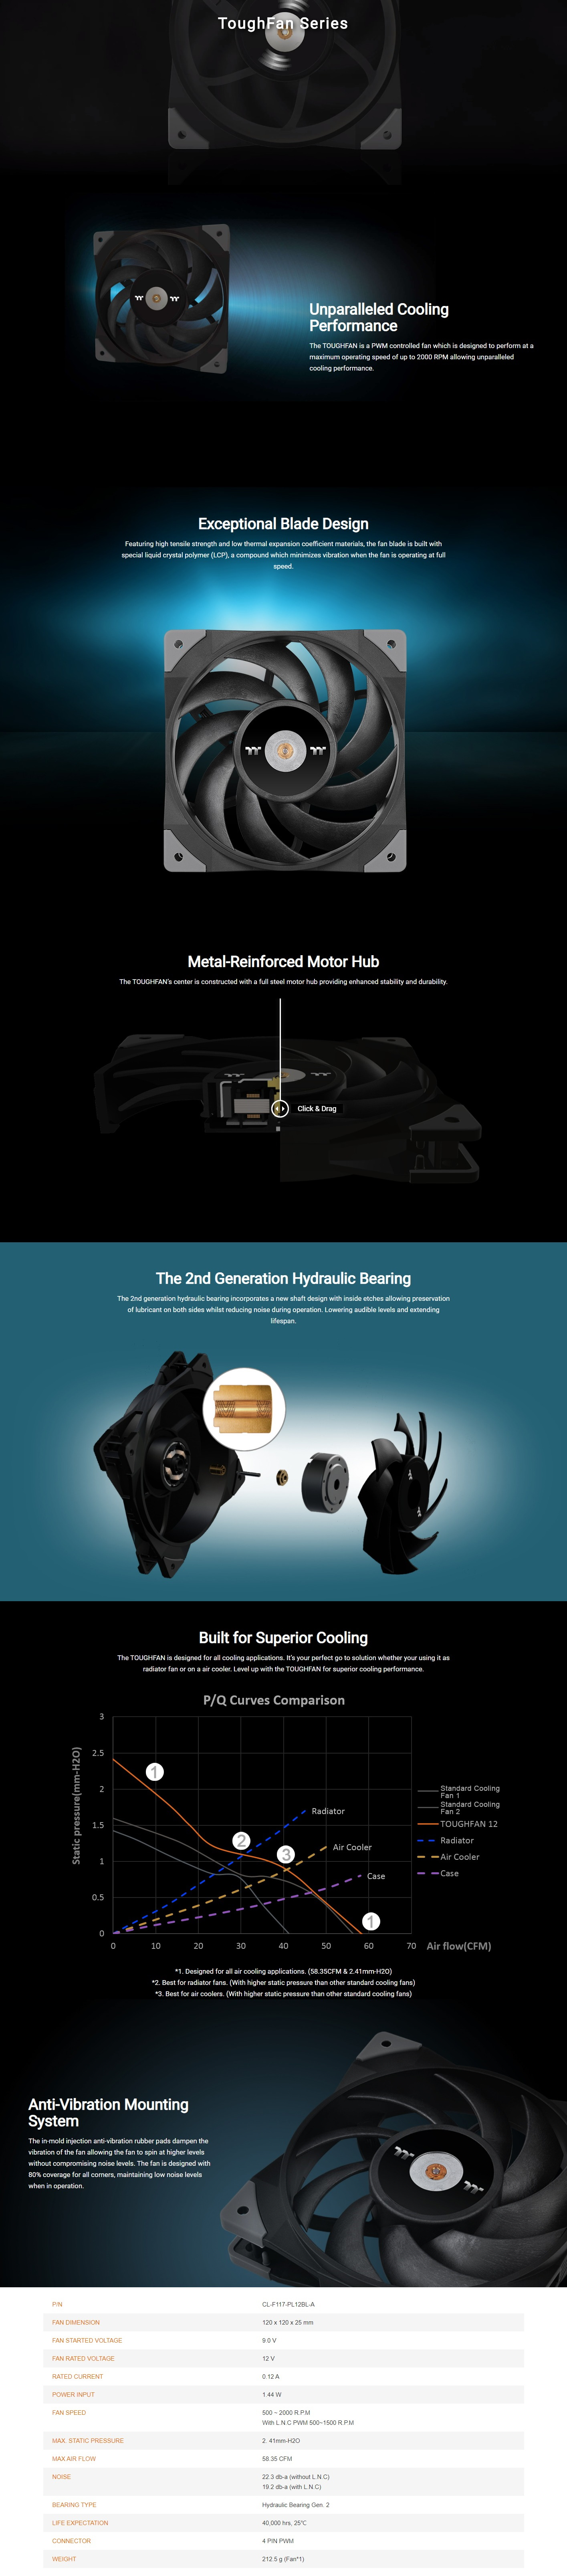 A large marketing image providing additional information about the product Thermaltake Toughfan PWM 120mm Radiator Fan - Additional alt info not provided